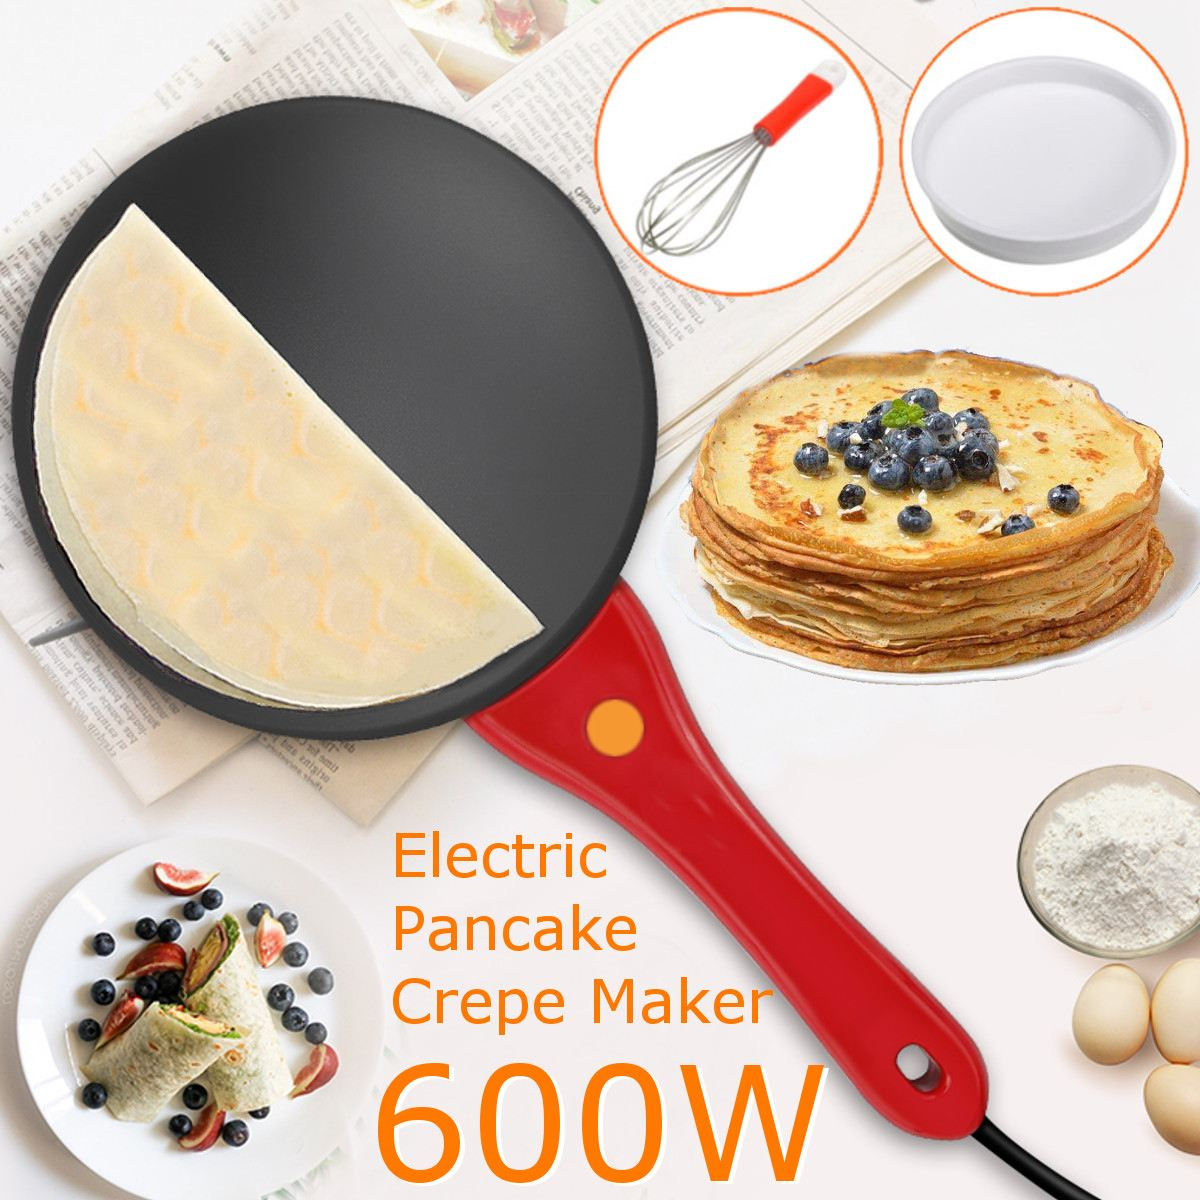 3Pcs 600W Electric Crepe Maker Pancake Machine Baking Pan Chinese Spring Roll Frying Machine Pizza Griddle Non-stick Pie Cooker3Pcs 600W Electric Crepe Maker Pancake Machine Baking Pan Chinese Spring Roll Frying Machine Pizza Griddle Non-stick Pie Cooker